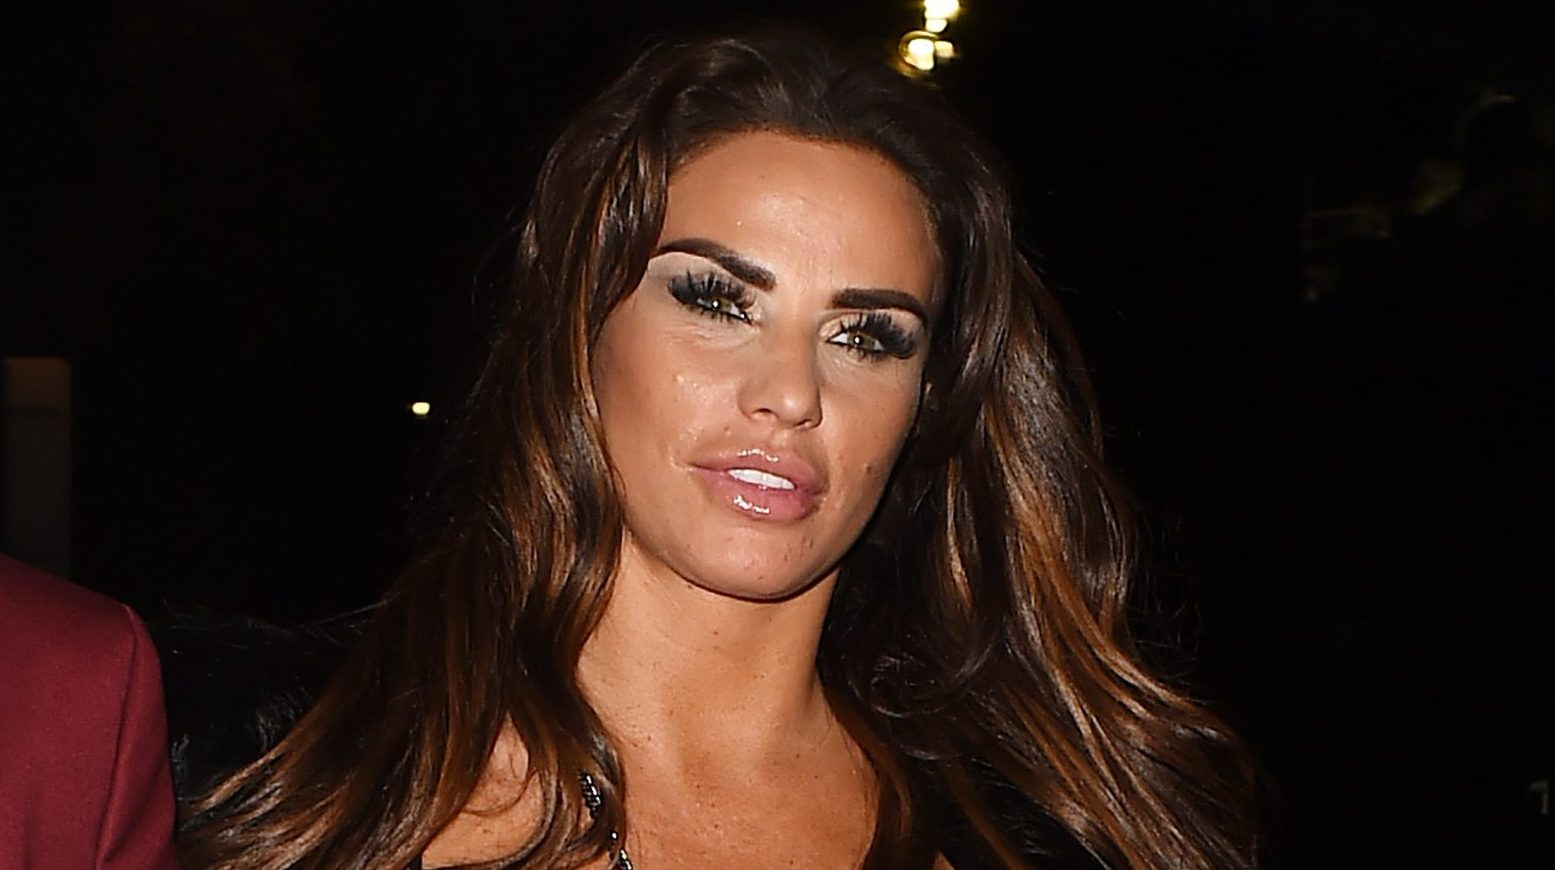 Katie Price's favourite Dreamboy Lotan Carter pulls out all the stops at BushAID charity event